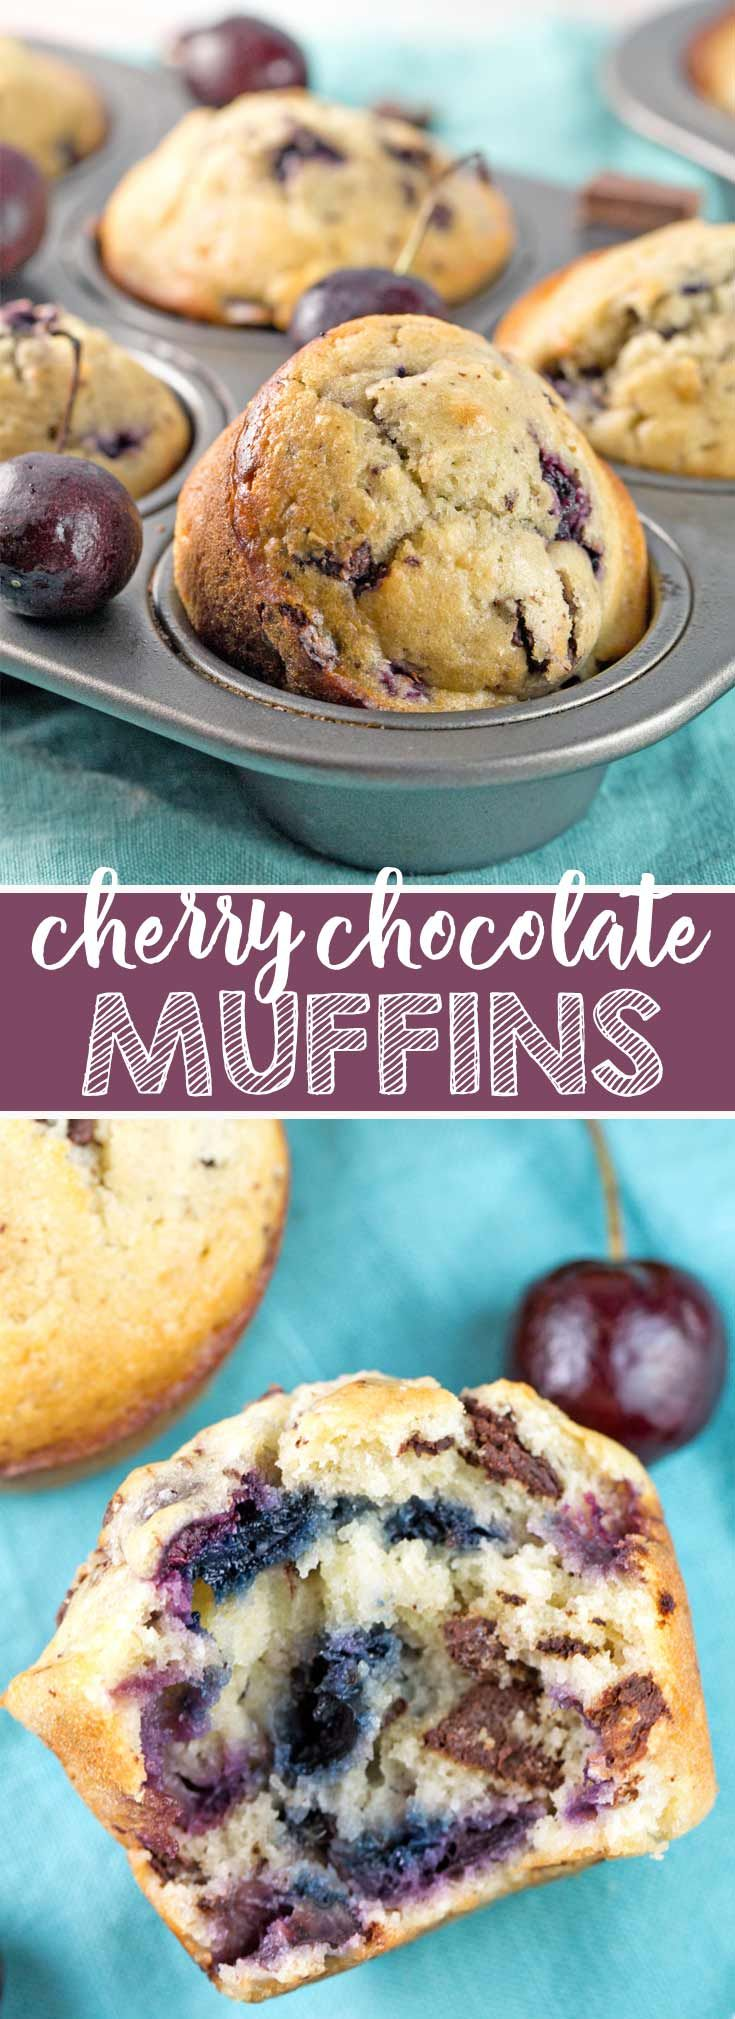 Cherry Chocolate Chunk Muffins: One bowl, mix by hand, filled with fresh cherries and dark chocolate chunks.  The perfect summertime sweet treat! {Bunsen Burner Bakery} via @bnsnbrnrbakery